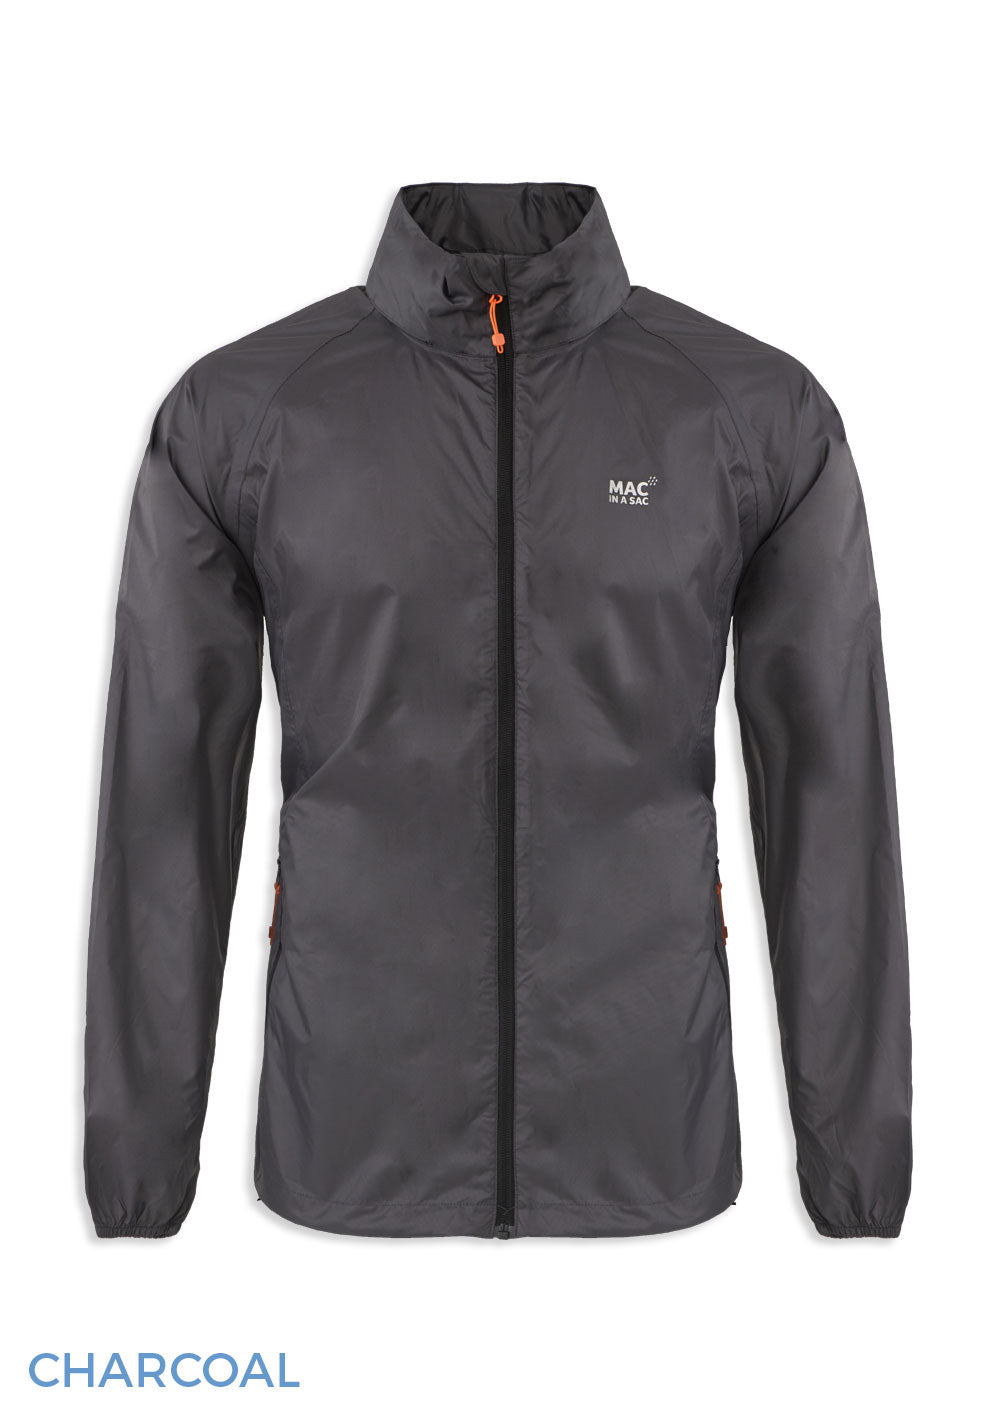 Charcoal grey Packaway Waterproof Jacket by Lighthouse